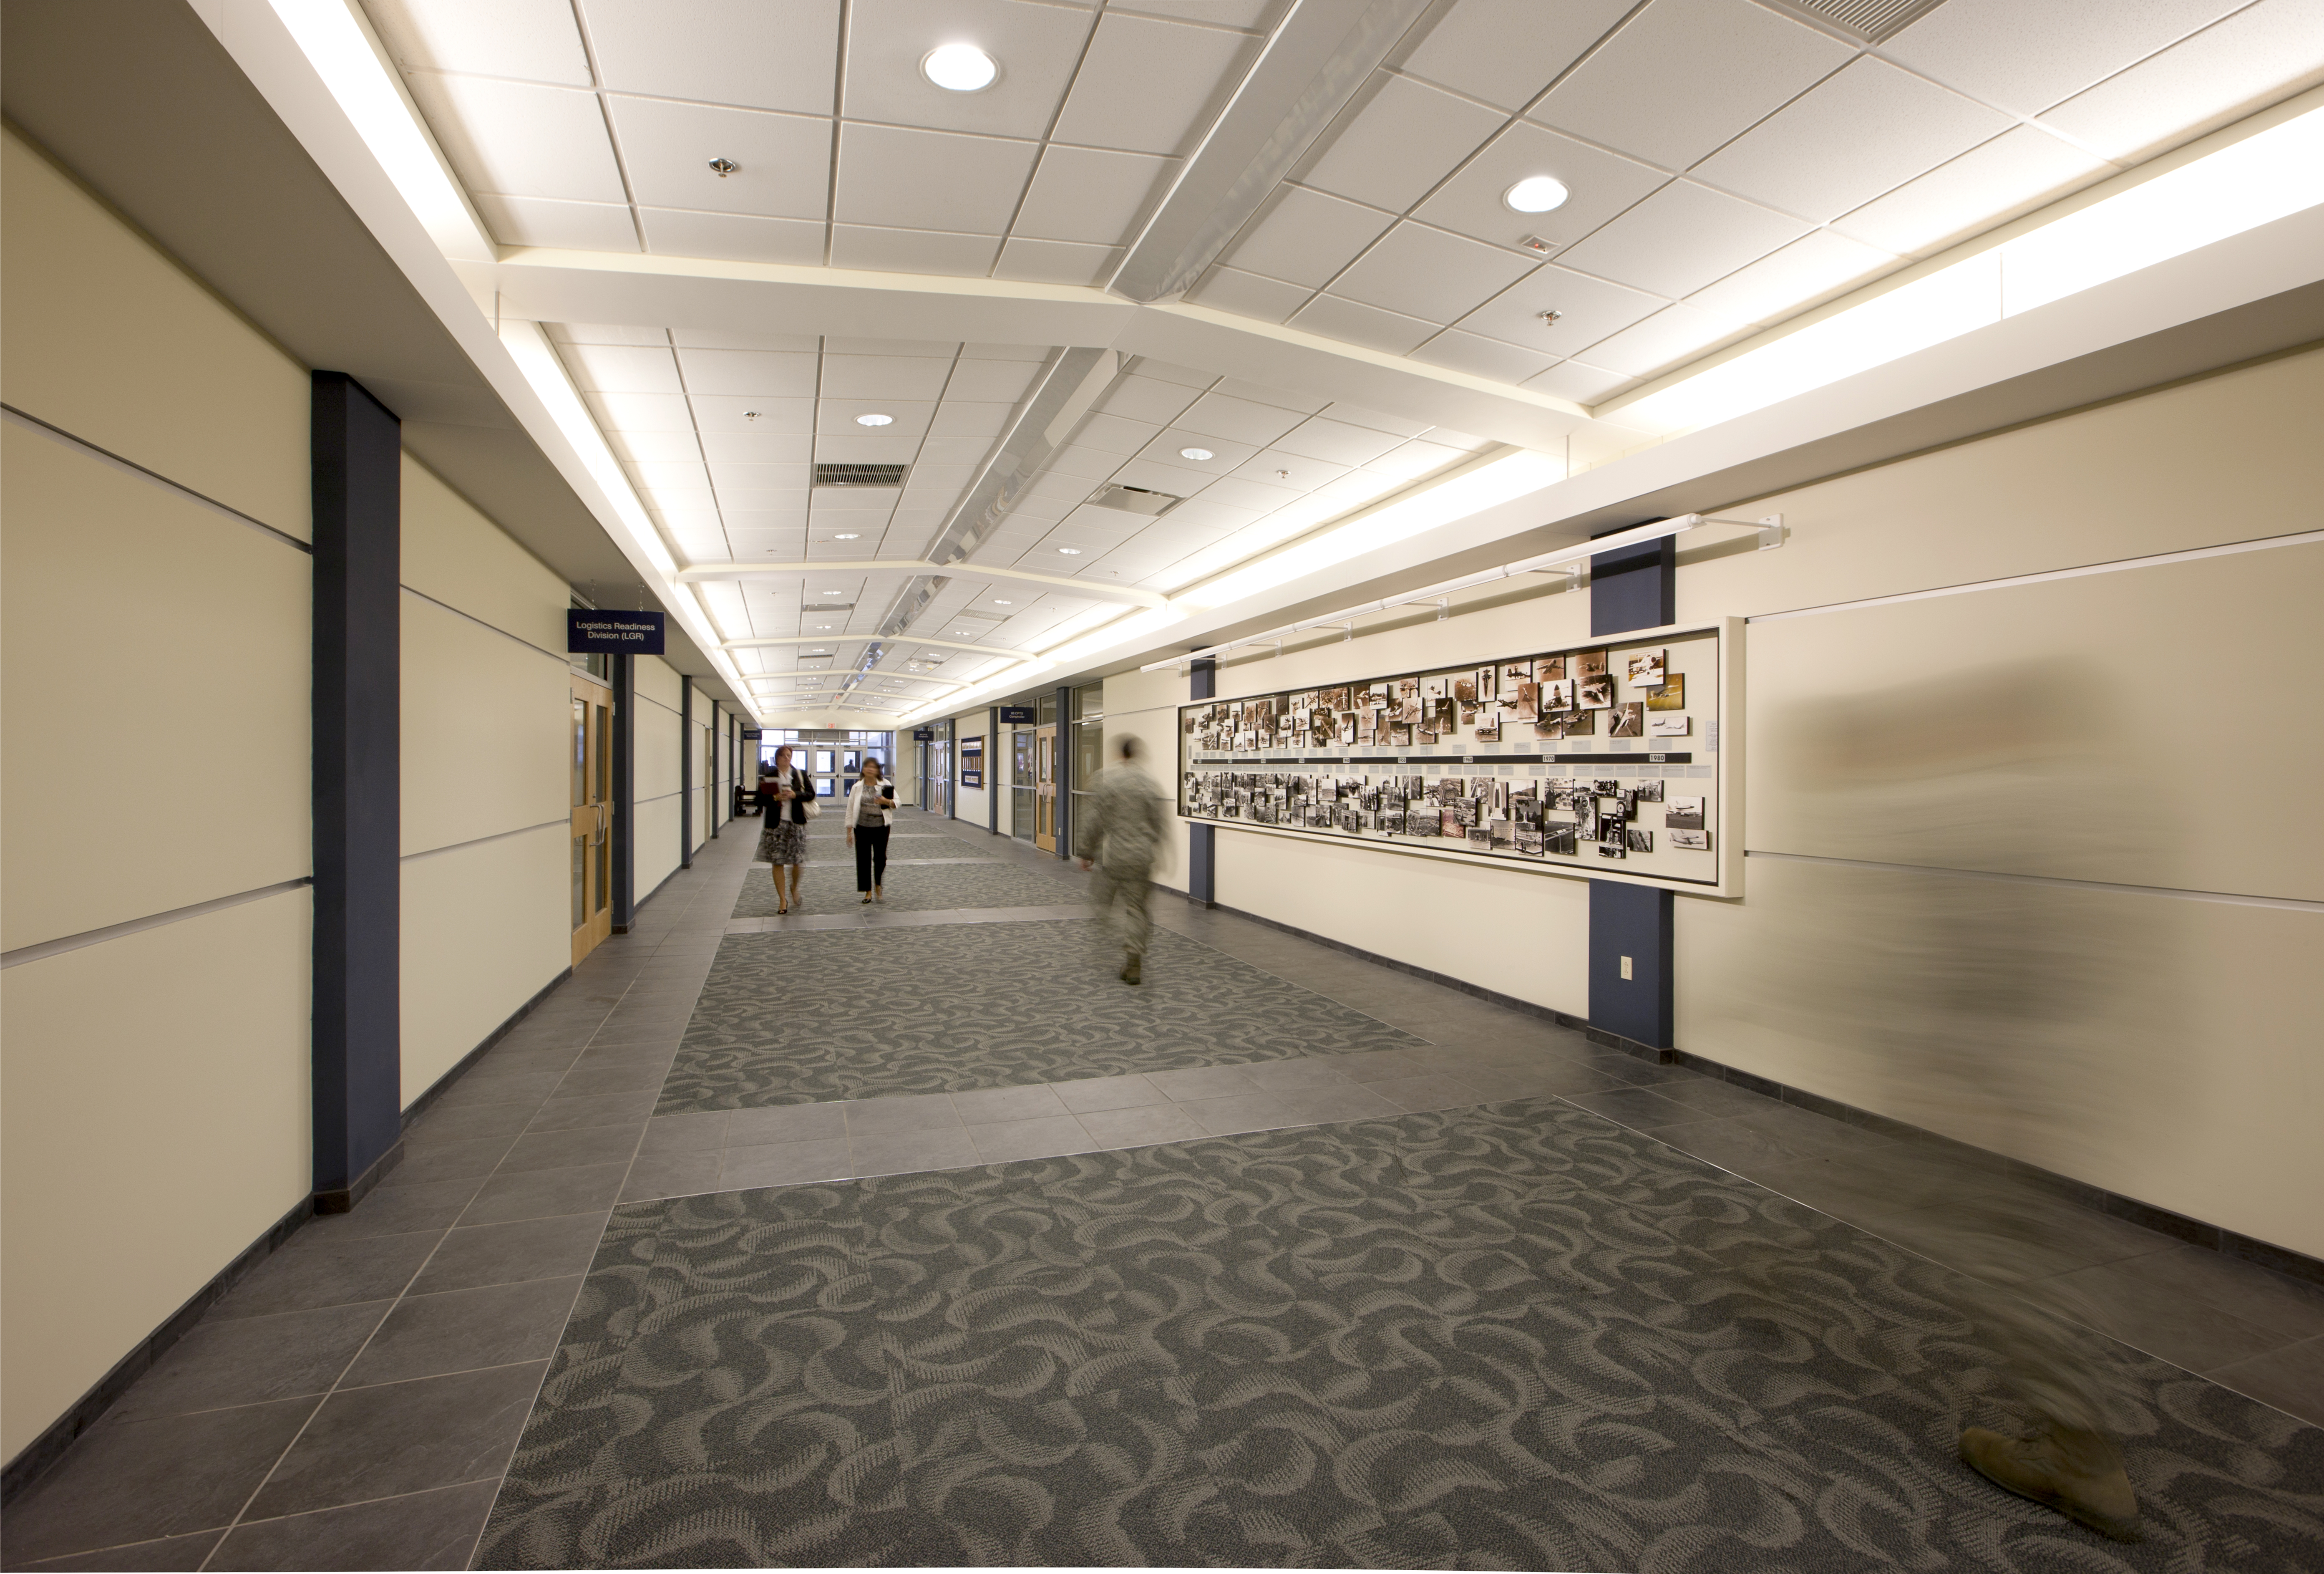 wright-patterson-airforce-base-30001-hallway-people